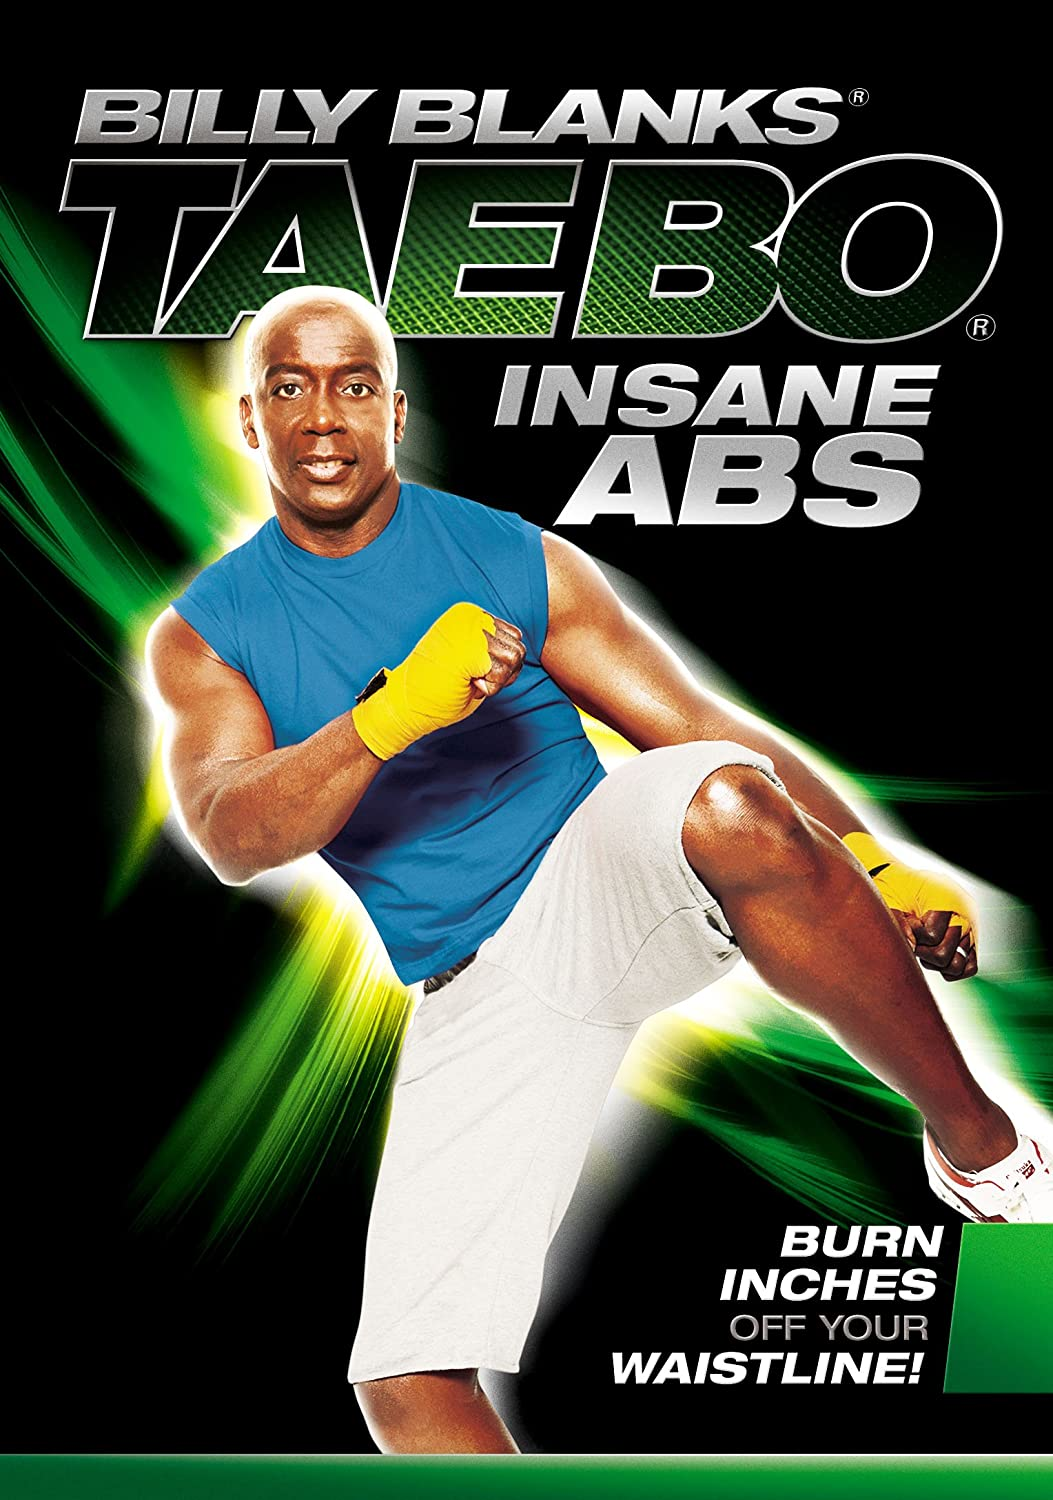 Billy Blanks: Tae NEW before selling Insane Dealing full price reduction Bo Abs